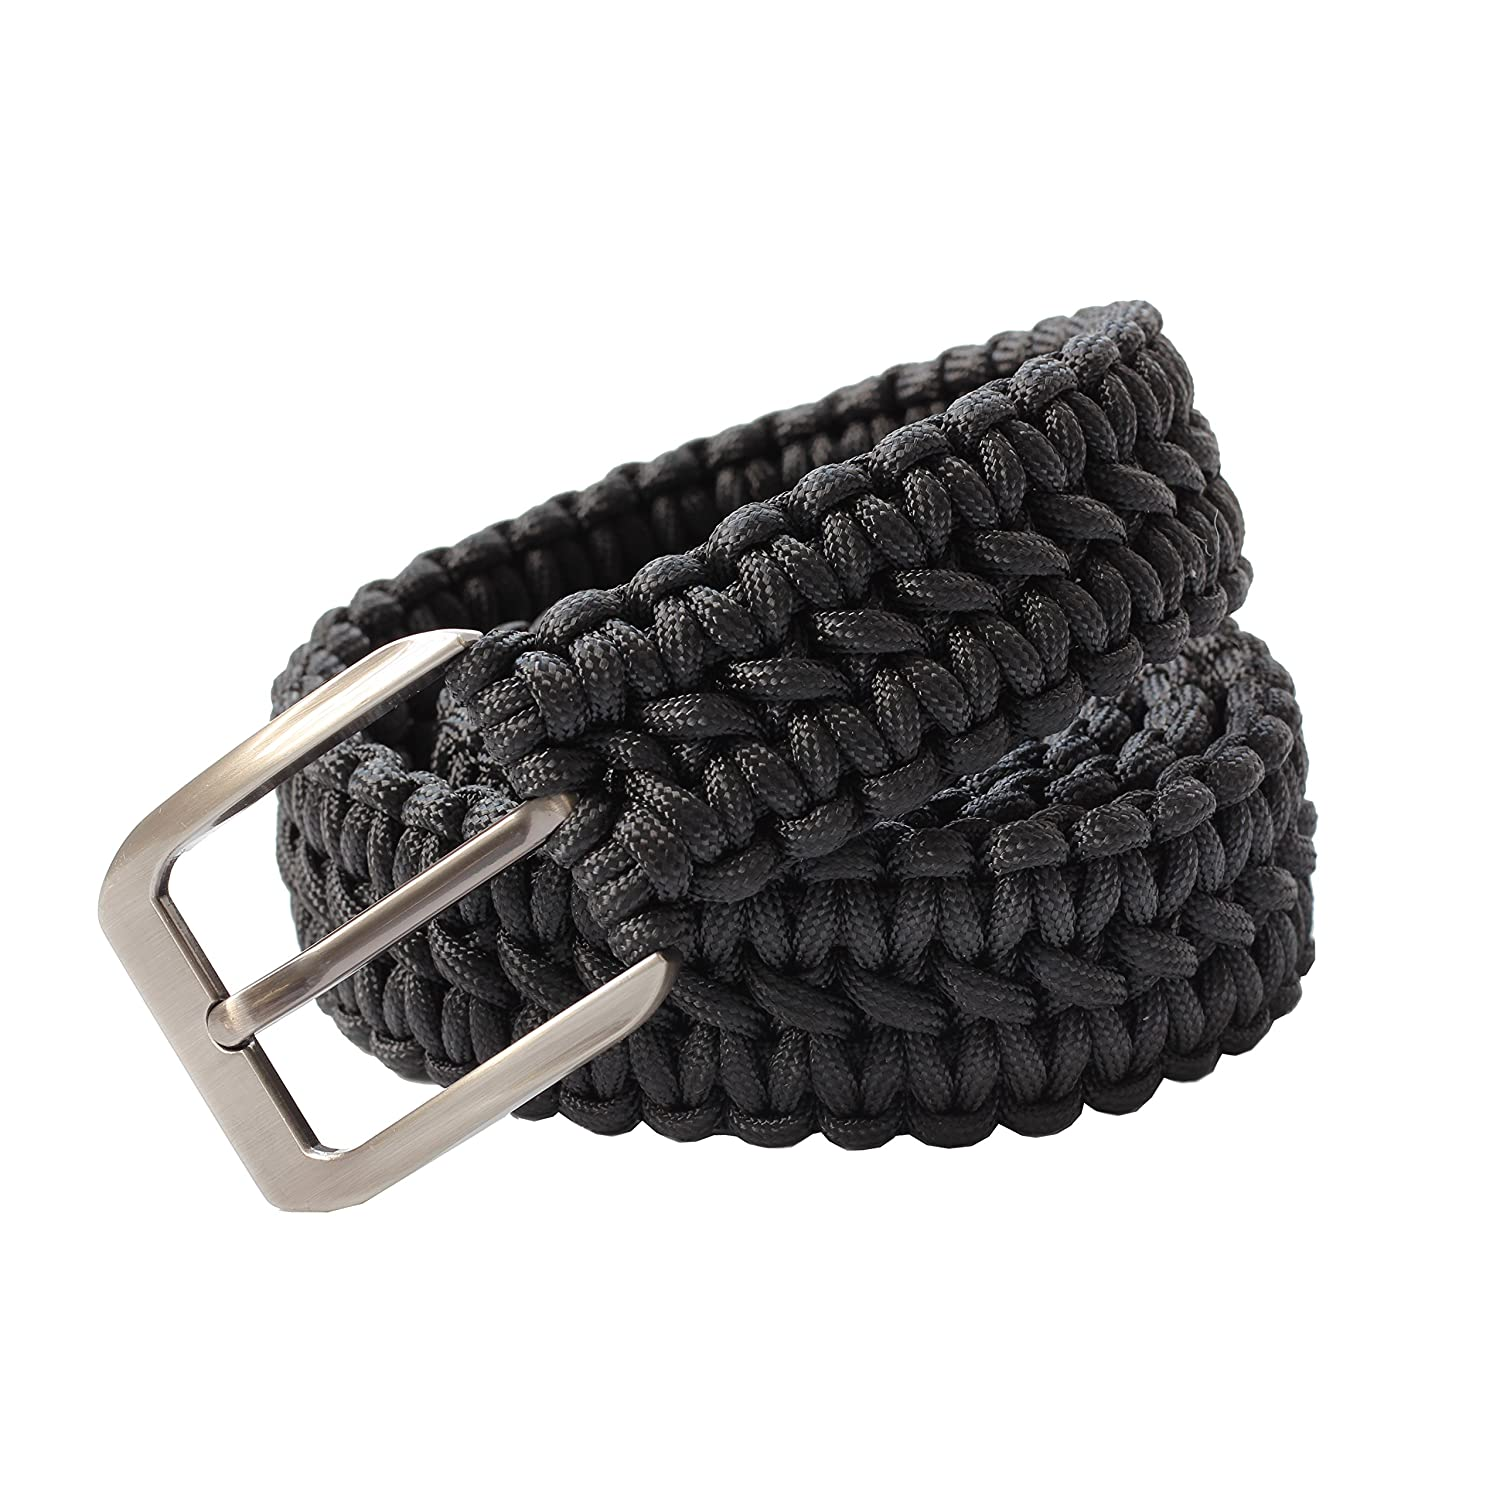 HLHRainbow EDC 550 Paracord Belts with Metal Buckles for Men Hand-Braided Belts for Outdoor Survival